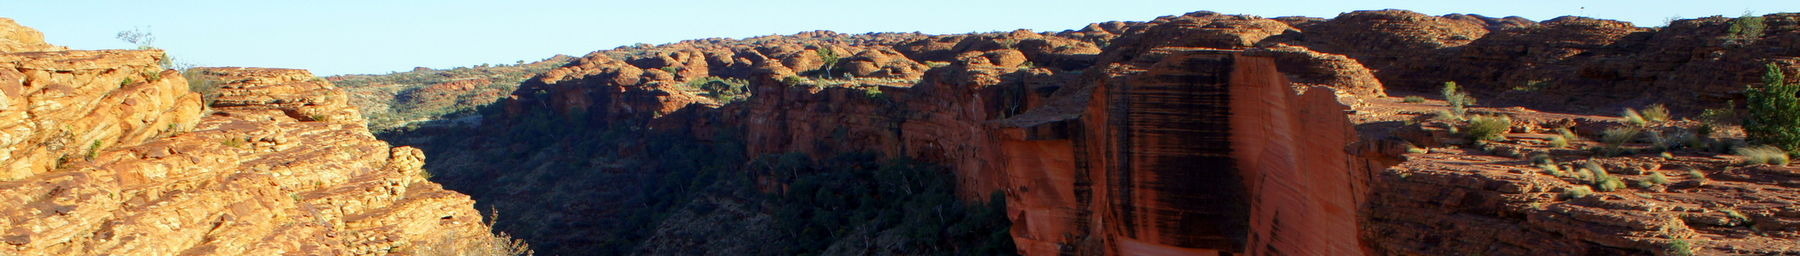 Watarrka banner Kings Canyon.jpg